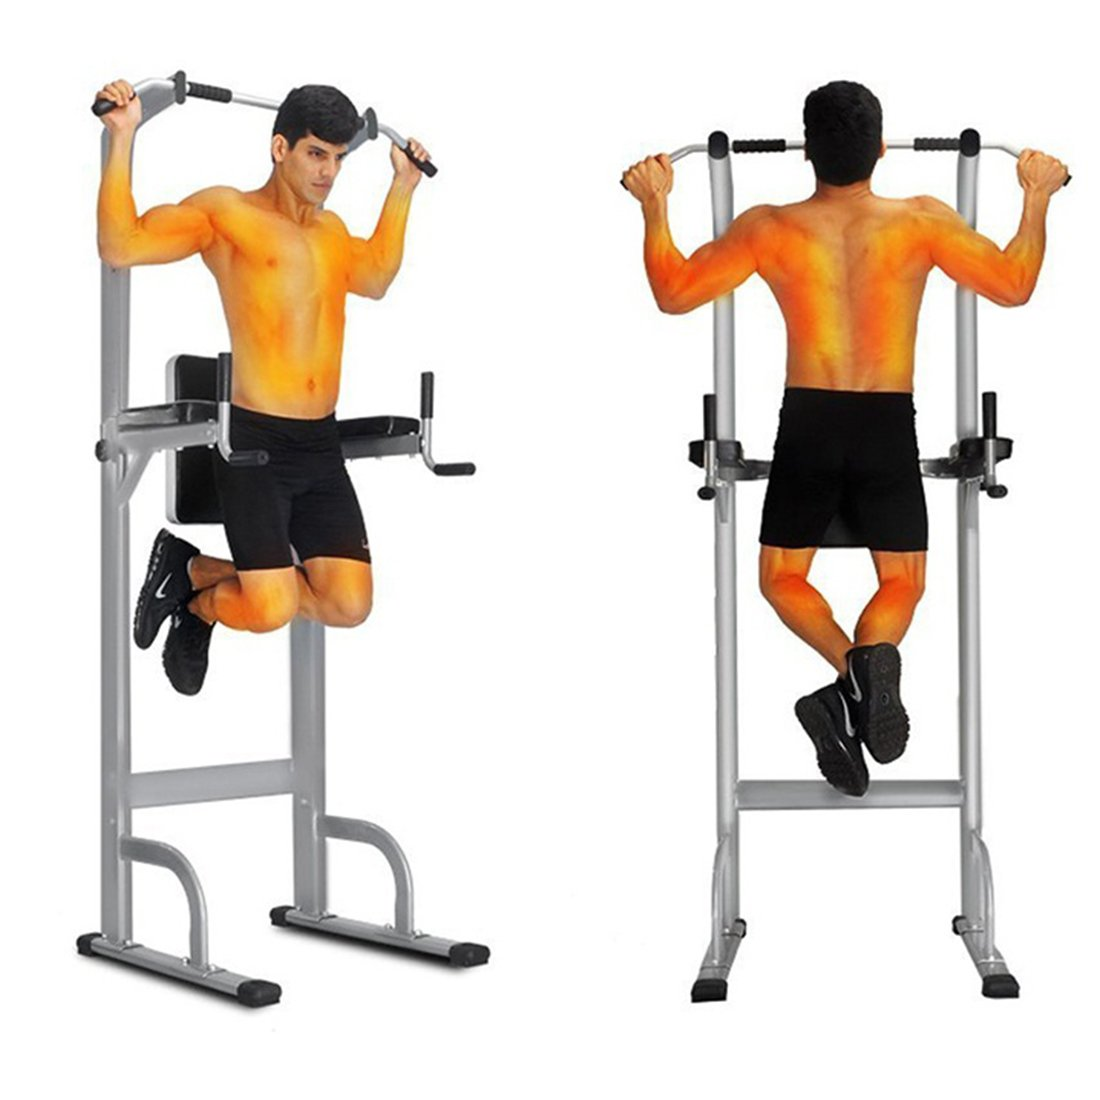 Sports Dip Stands Home Gyms Exercise & Fitness Exercise Equipment Pull-Up Bars Muscle Strength Training Equipments Power Tower Ups Bar Dip Stands by Unknown